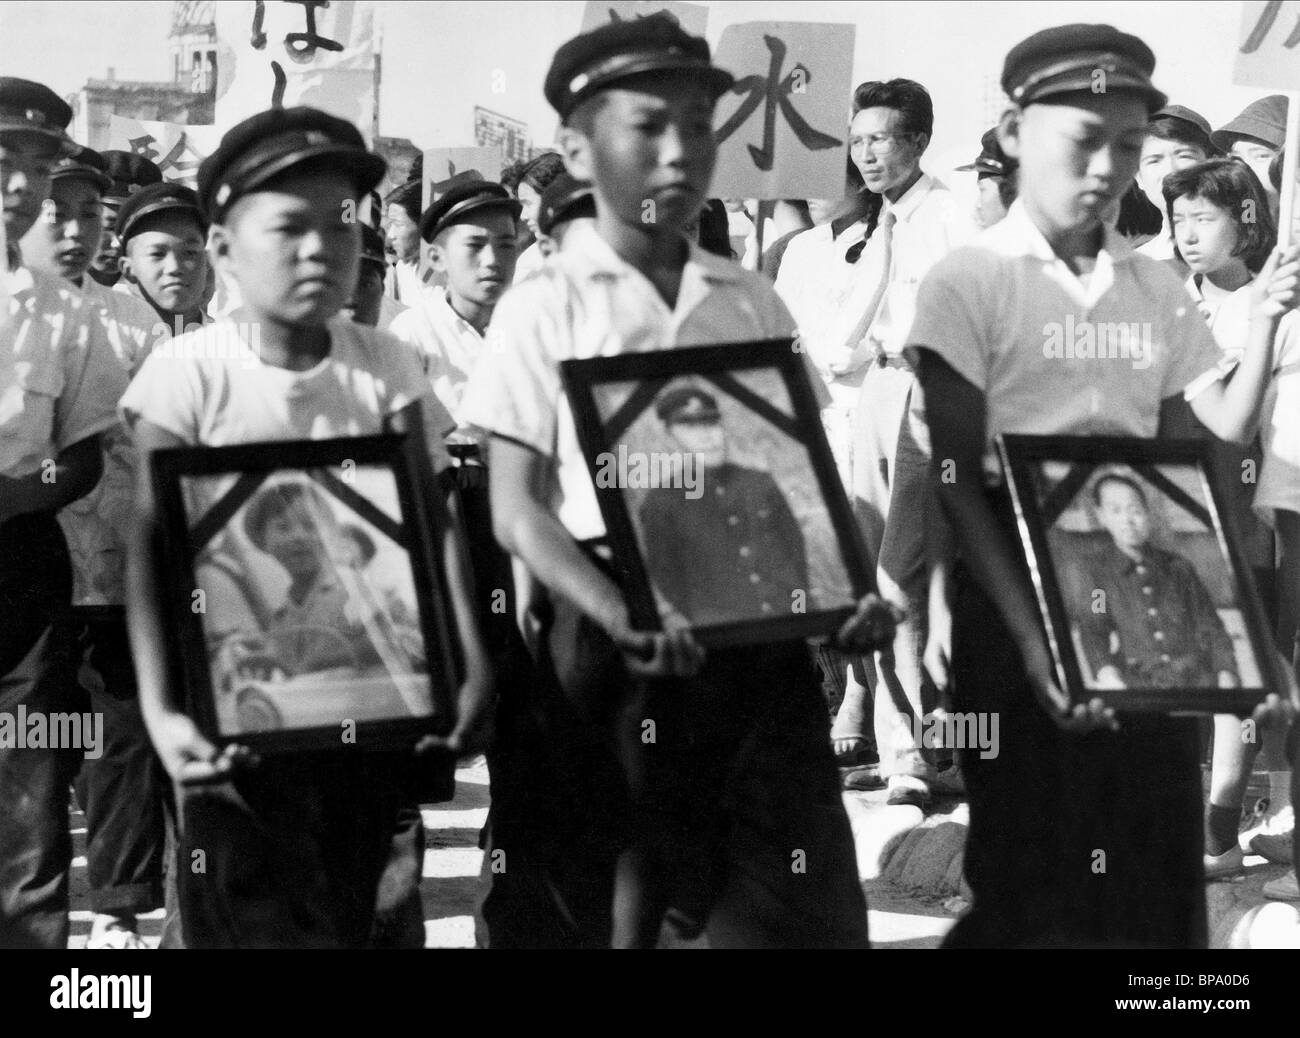 CHILDREN MARCH IN THE STREET HIROSHIMA MON AMOUR (1959) - Stock Image